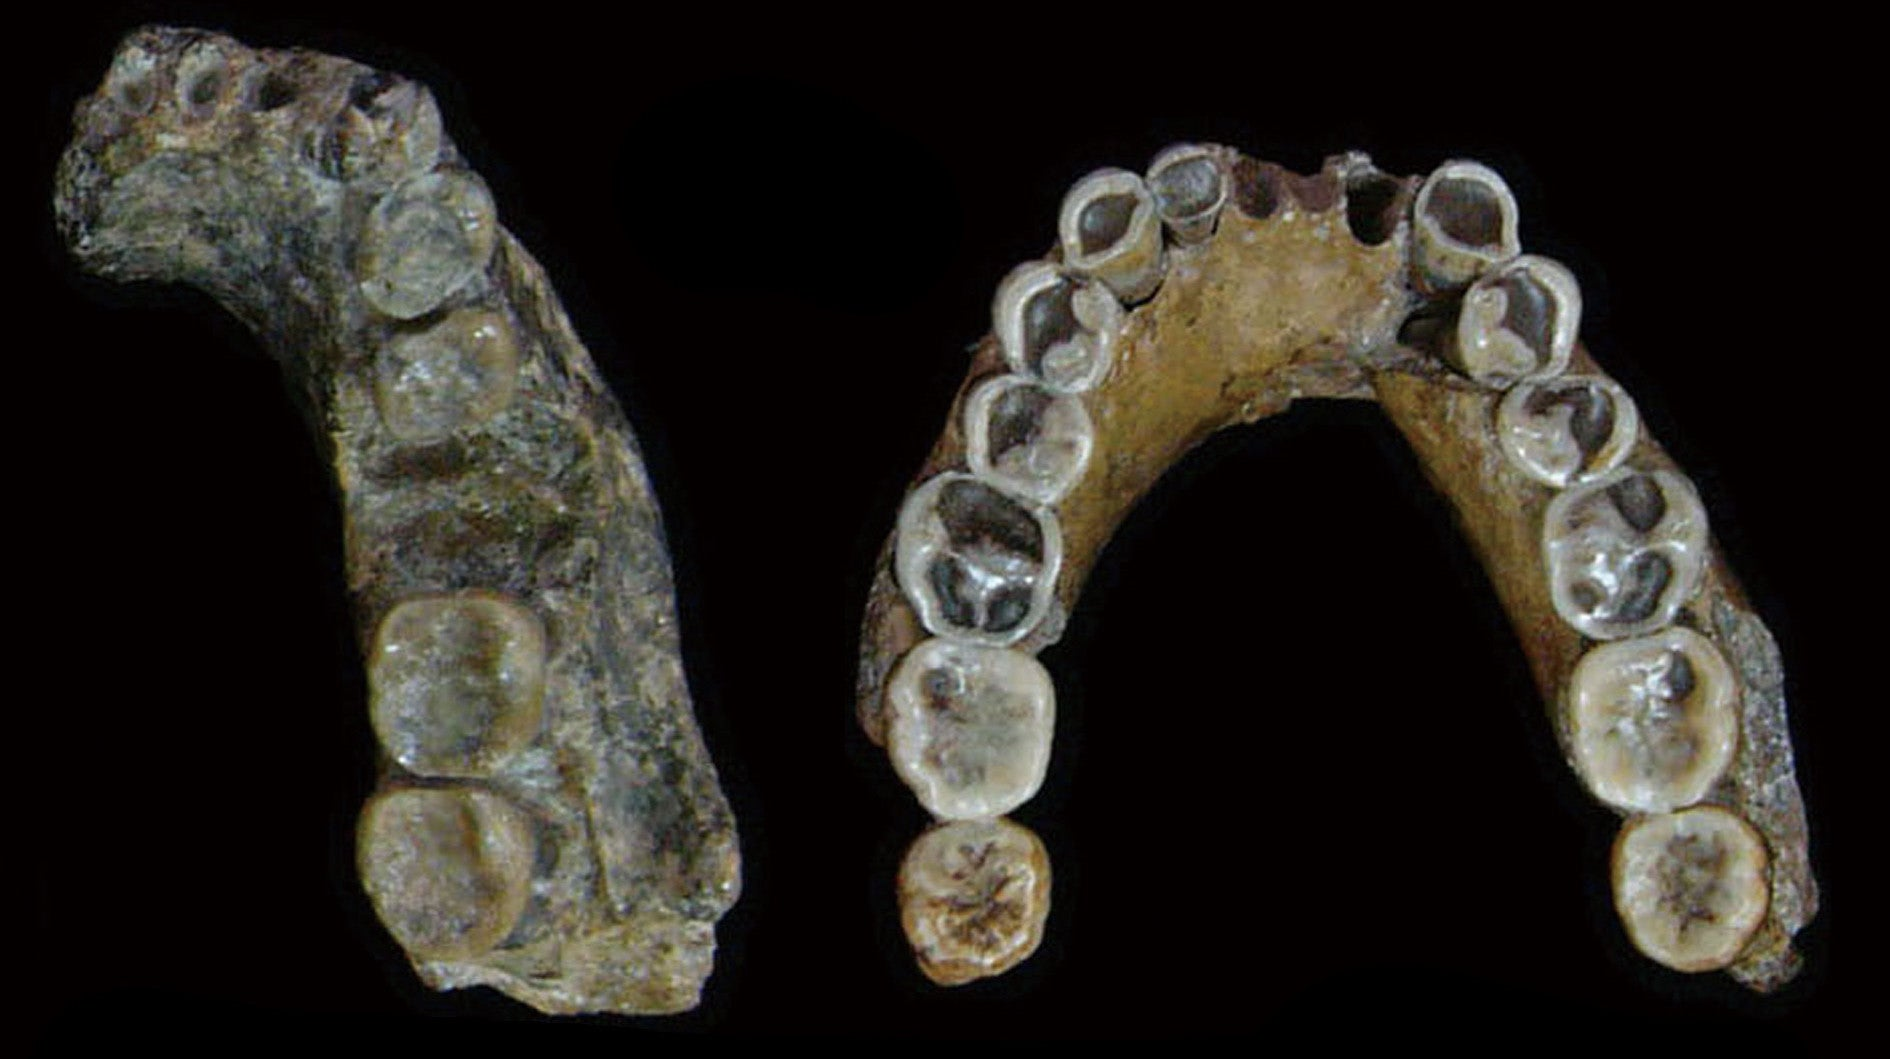 An Extinct Human Species May Not Have Evolved In Asia After All, New Research Suggests